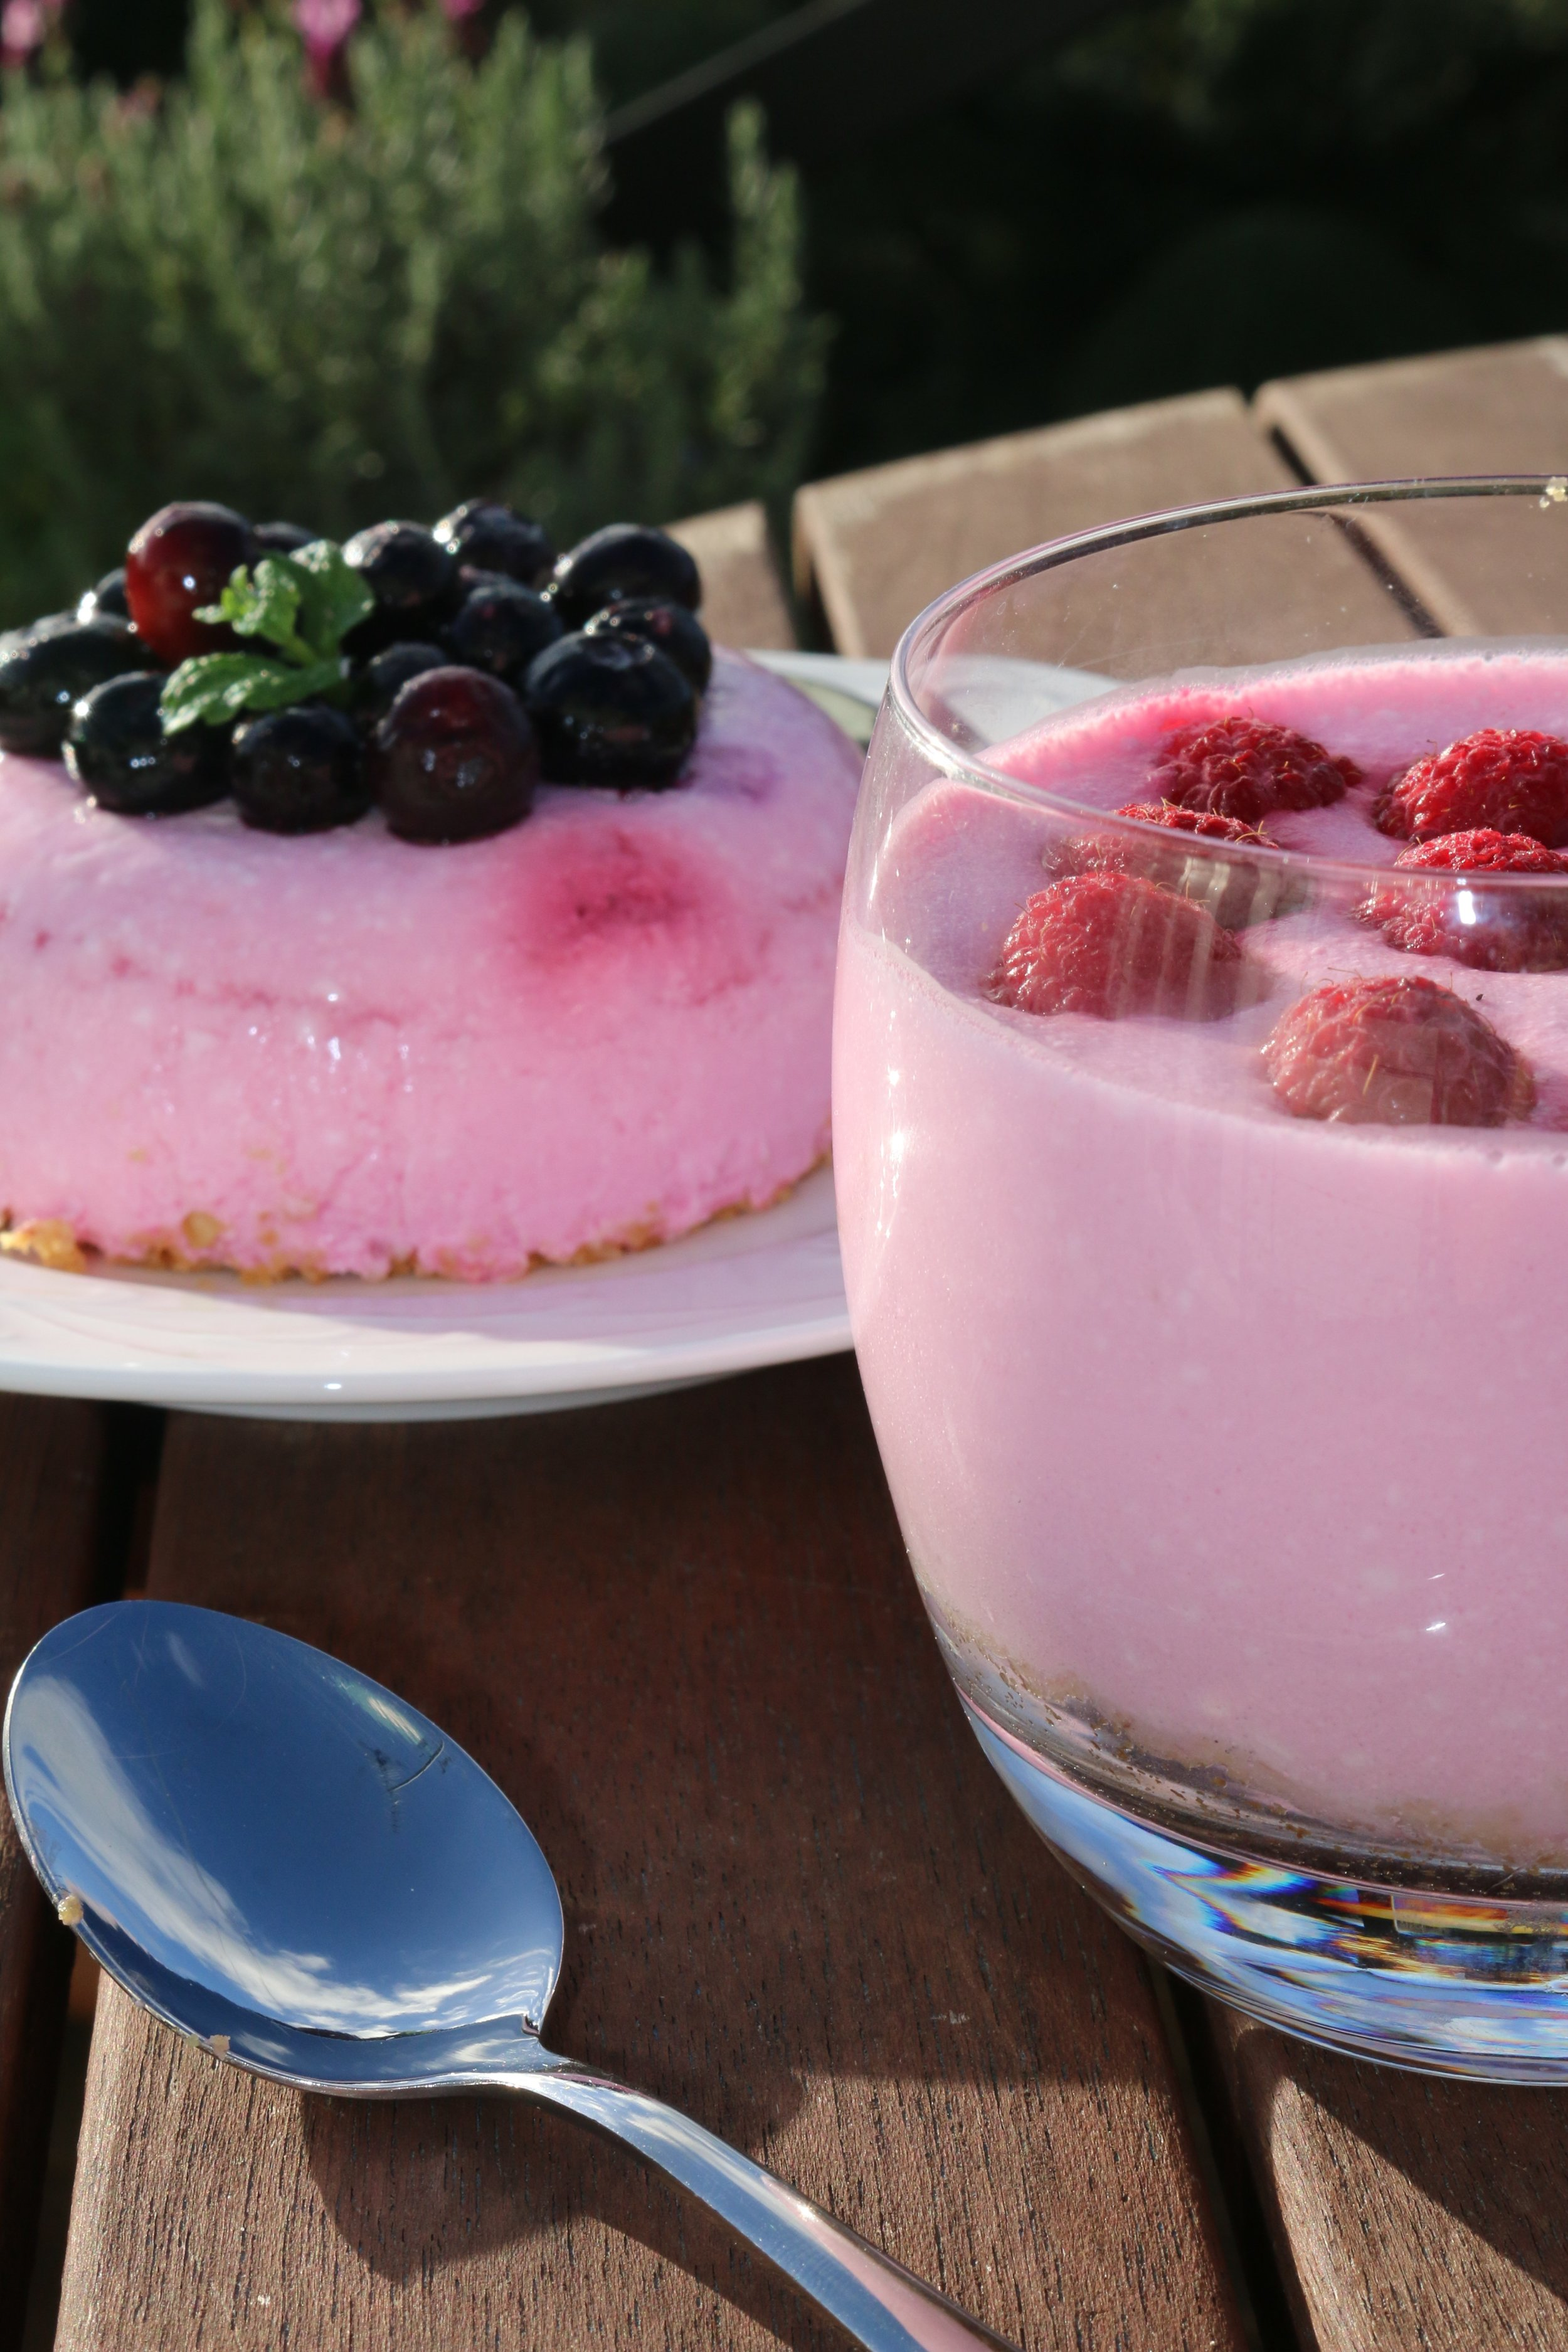 Cottage Cheese & Jelly Cheesecakes (serves 4)  Contribution from Helen Gibbs, Diabetes NZ Dietitian